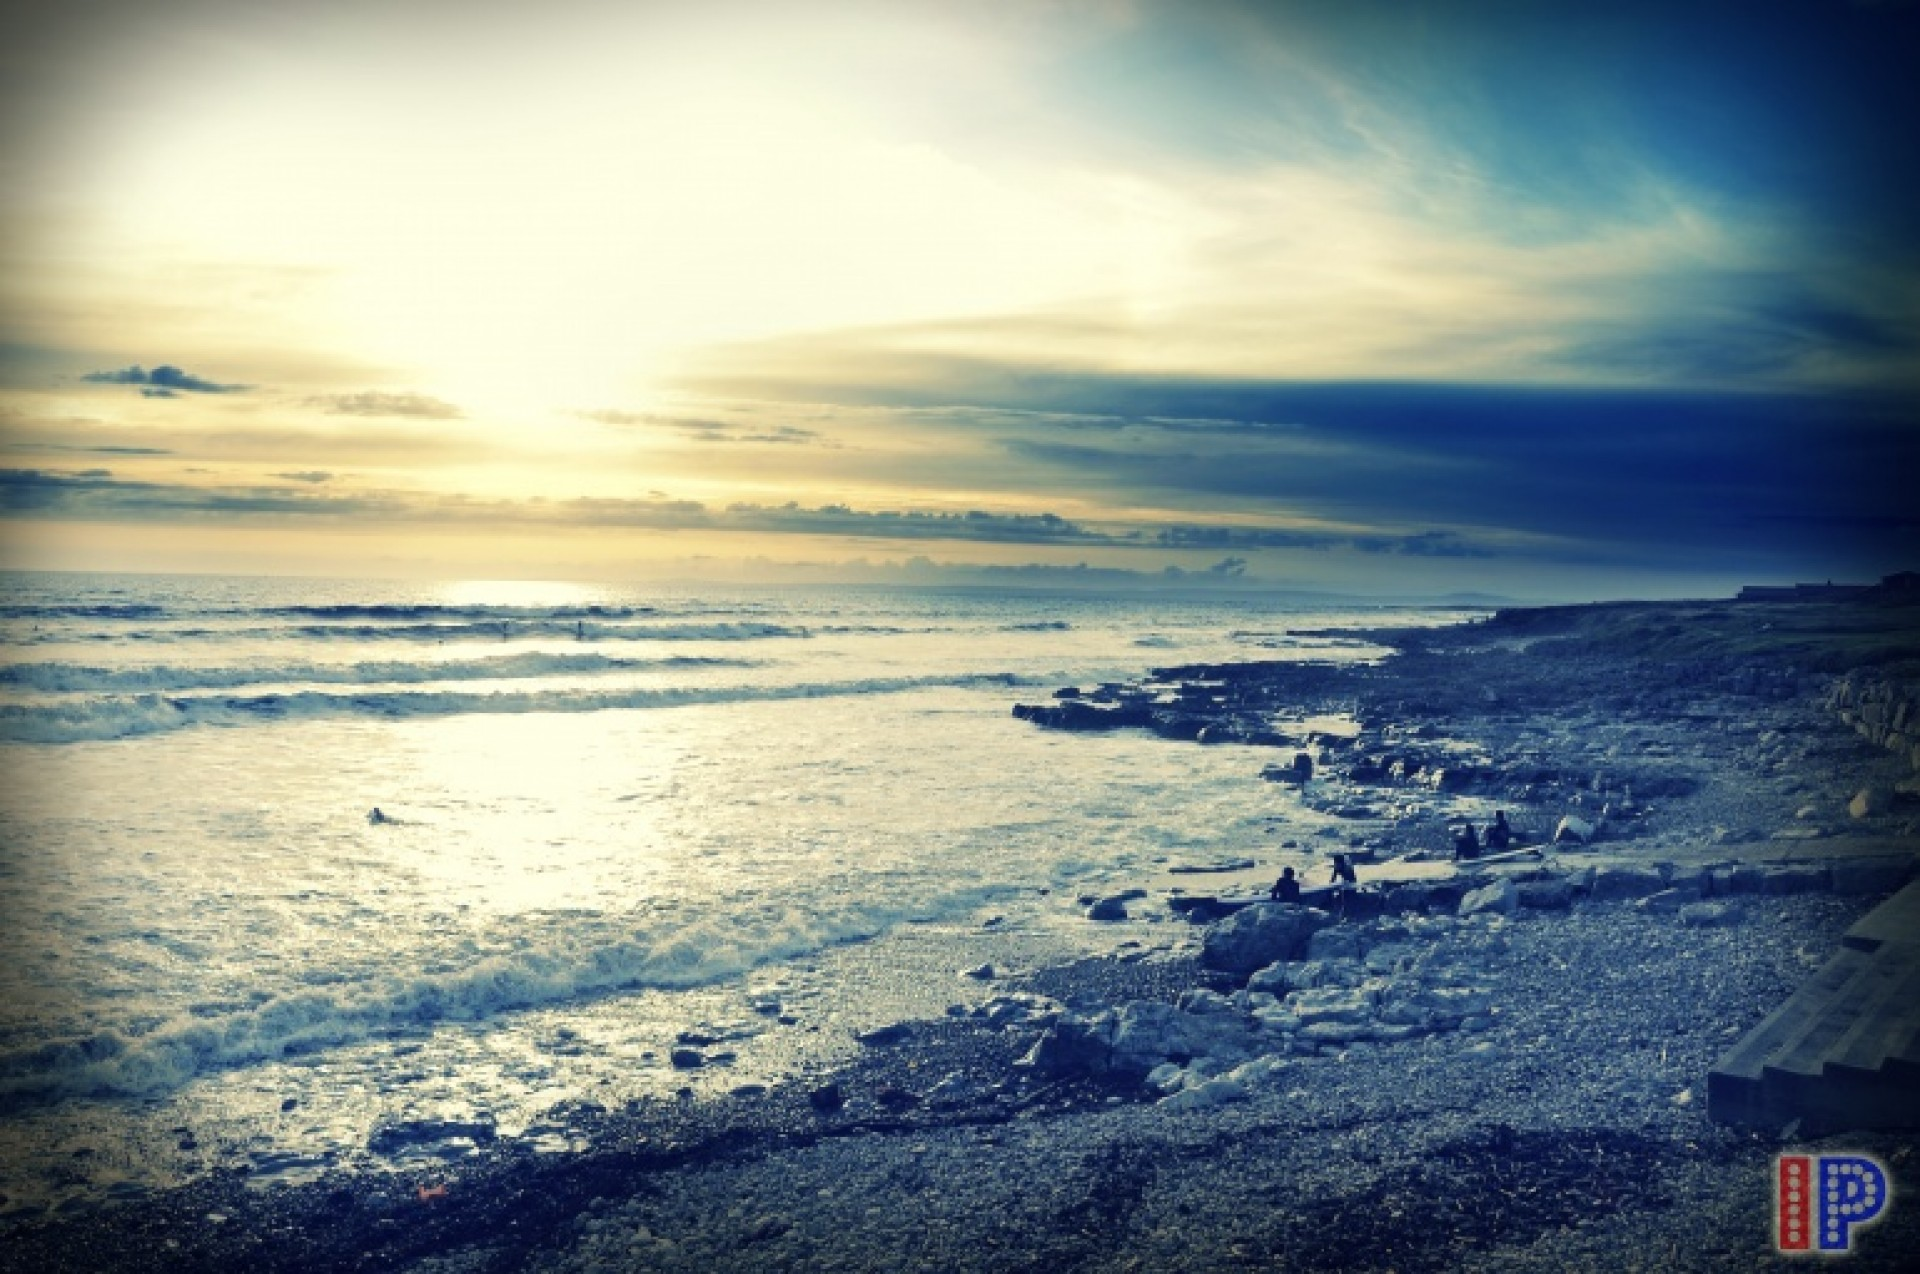 GarethDavison's photo of Porthcawl - Coney Beach